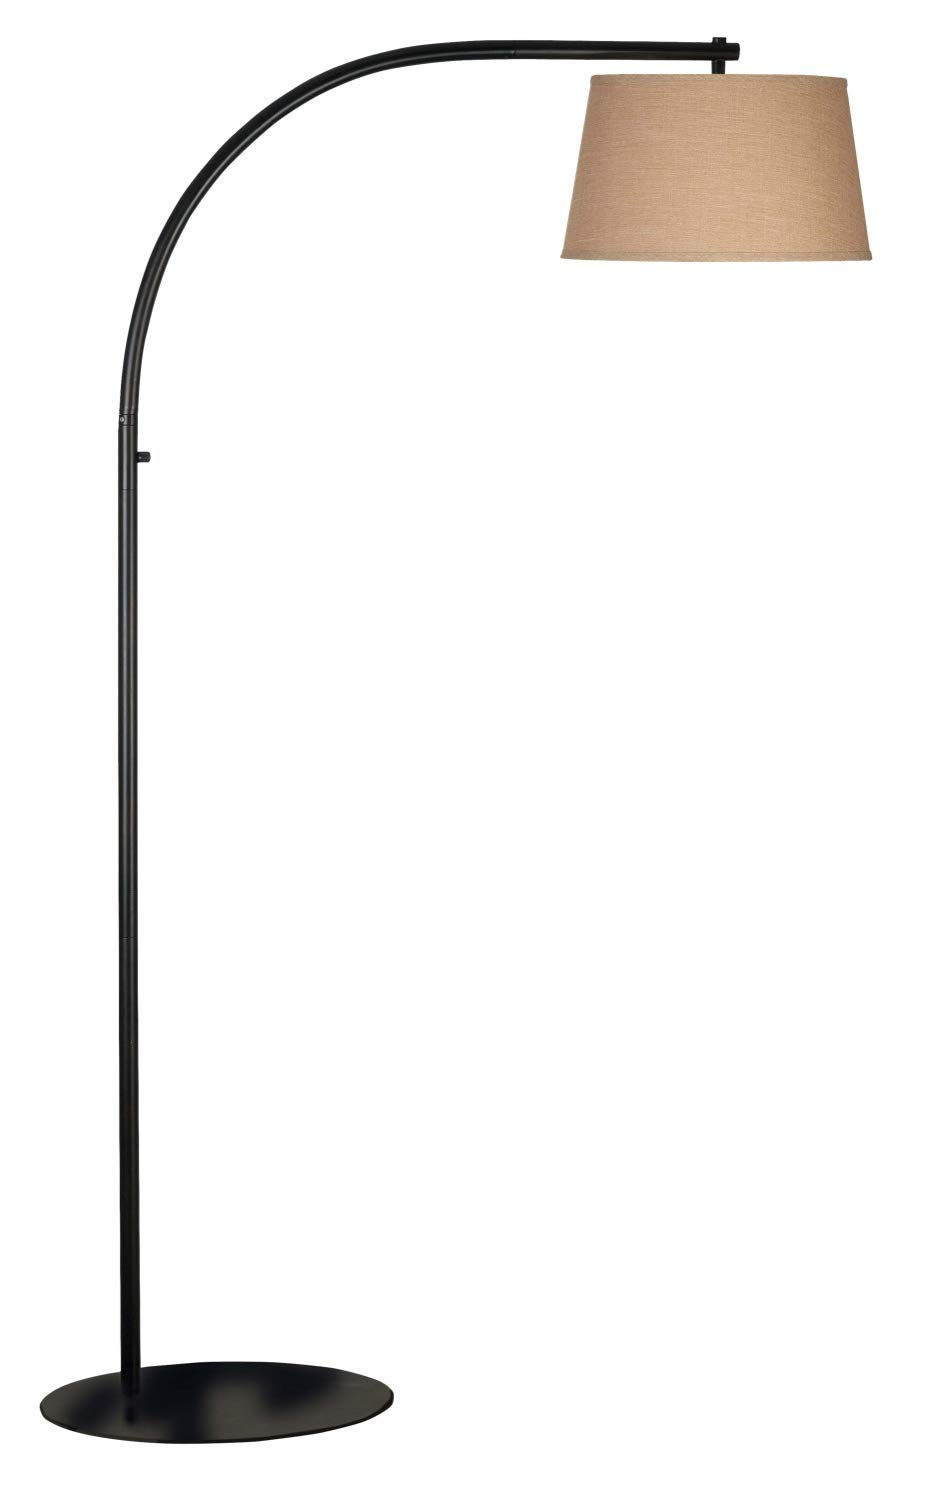 Kenroy Home 20953ORB Sweep Arc Floor Lamp 69 Inch Height, 41.5 Inch width,17 inch extension Oil Rubbed Bronze